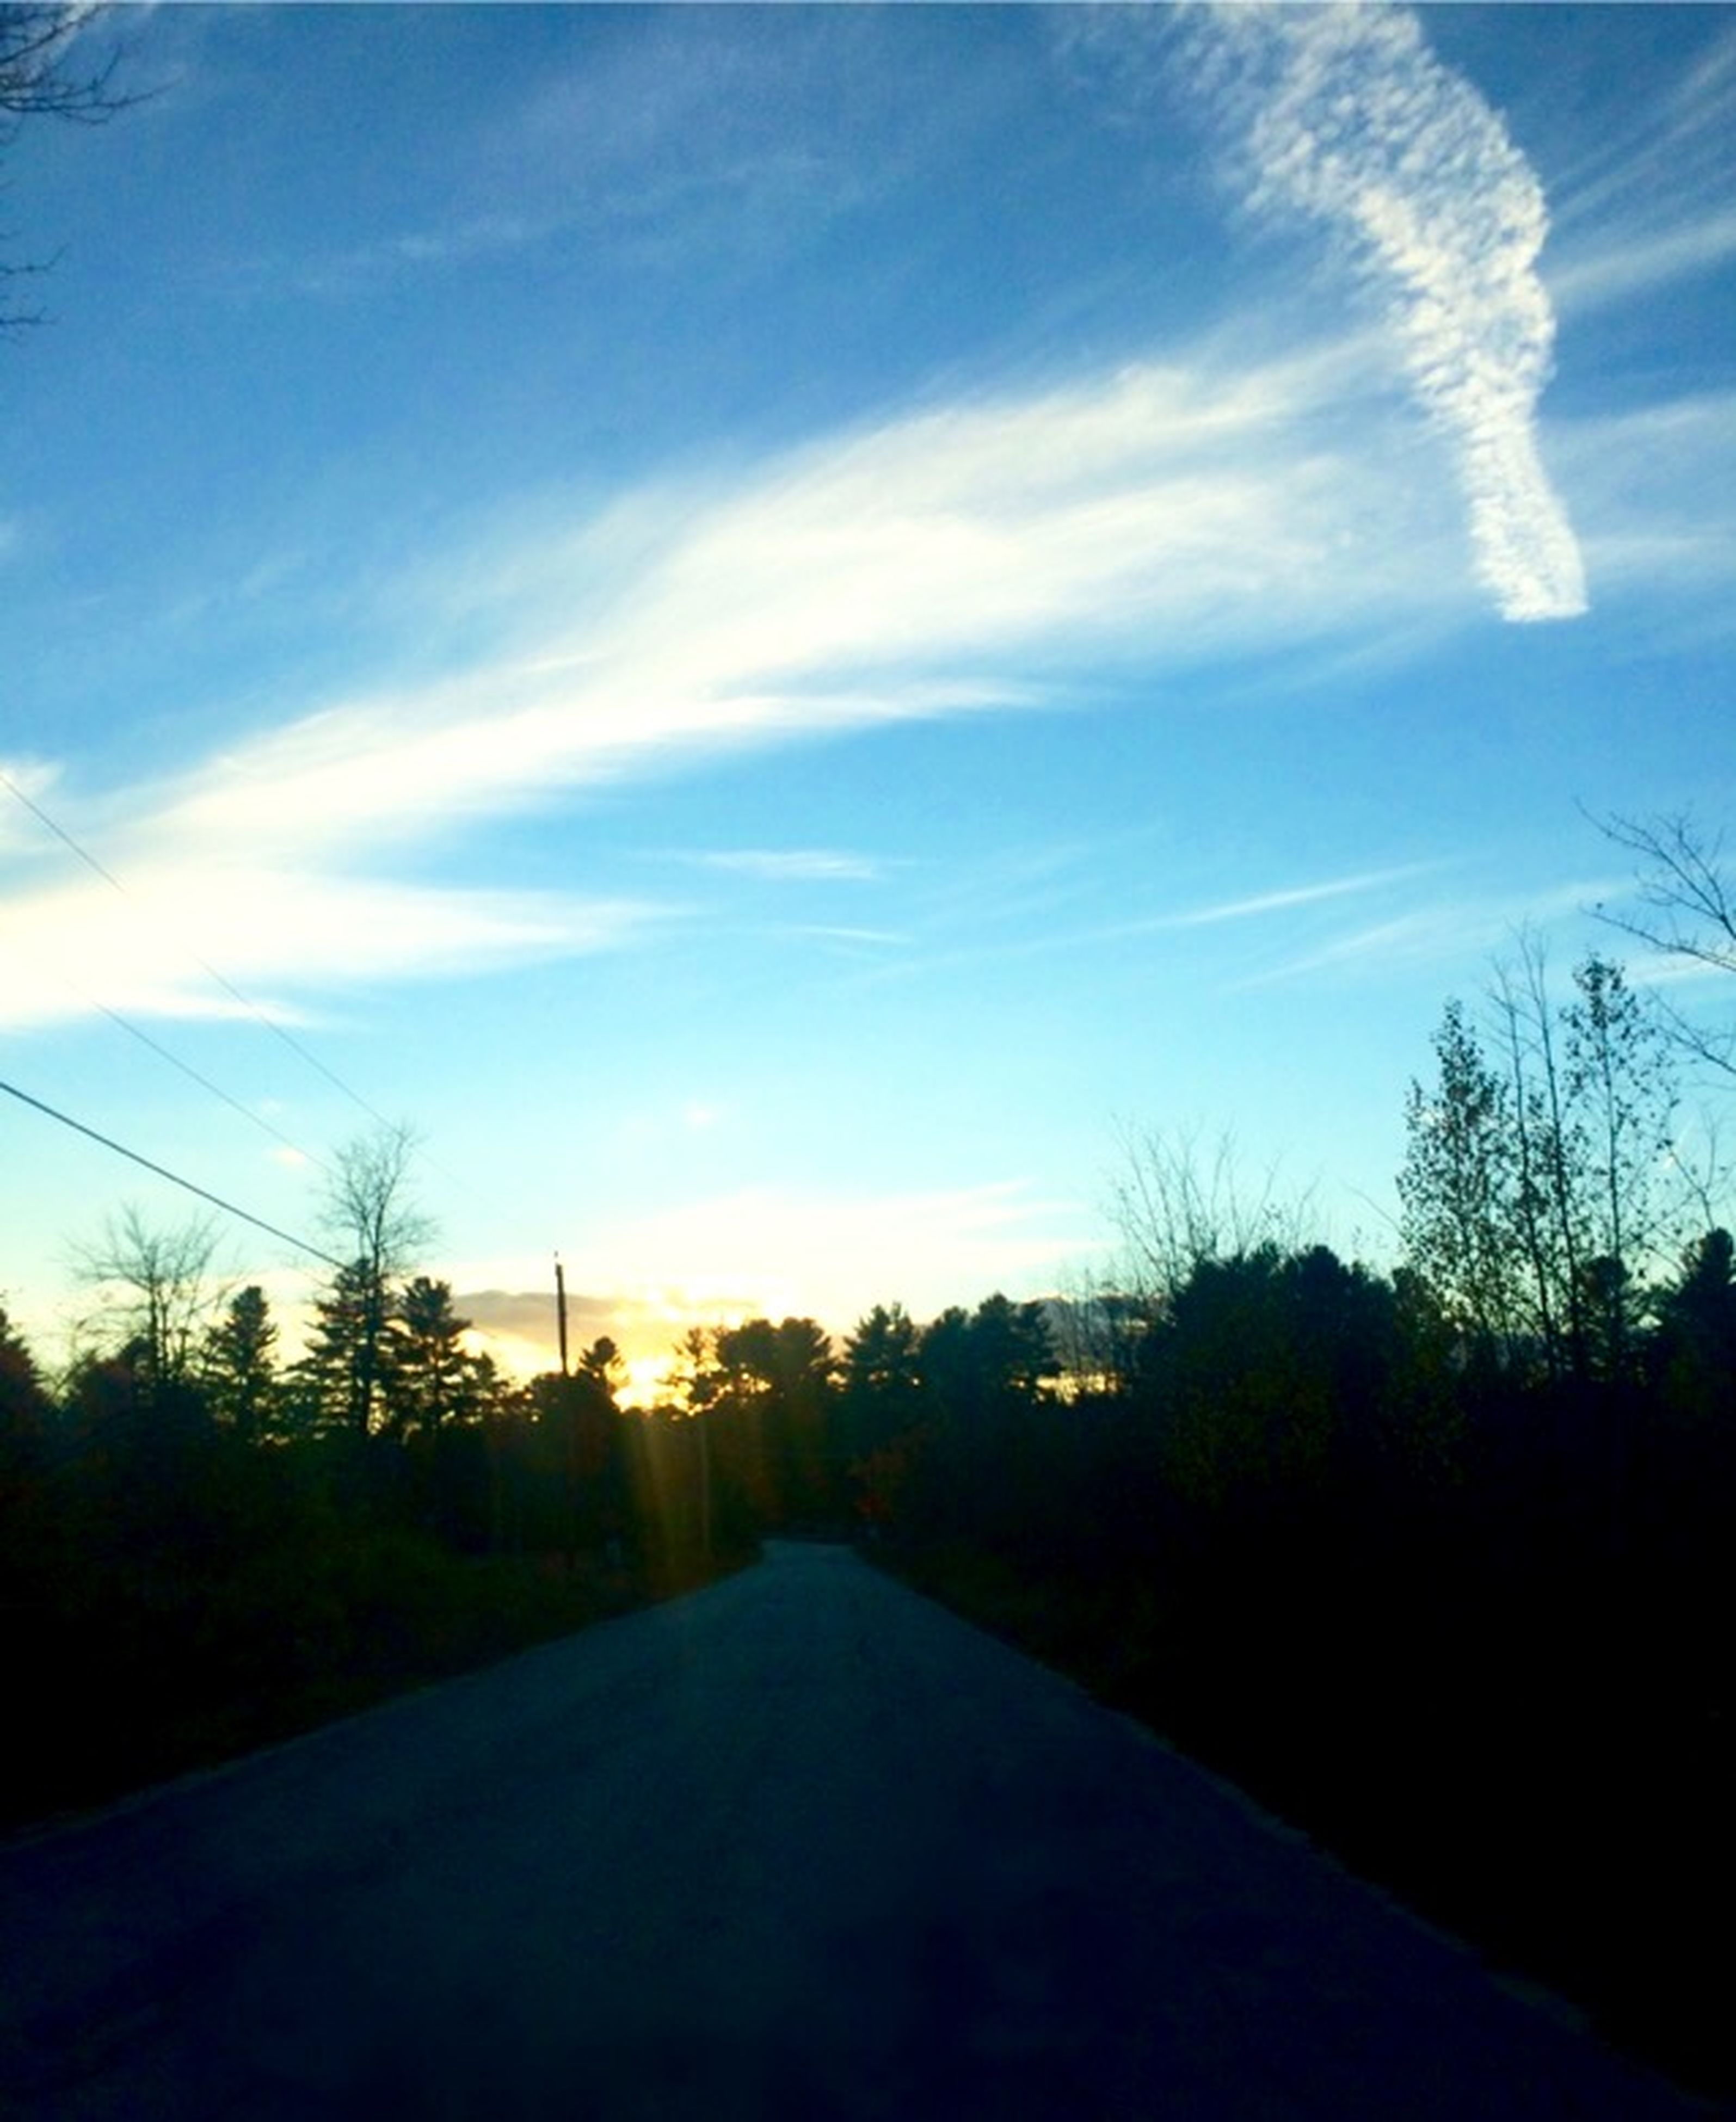 sky, the way forward, tree, road, sunset, diminishing perspective, silhouette, electricity pylon, tranquility, cloud - sky, power line, cloud, tranquil scene, blue, transportation, vanishing point, nature, long, no people, outdoors